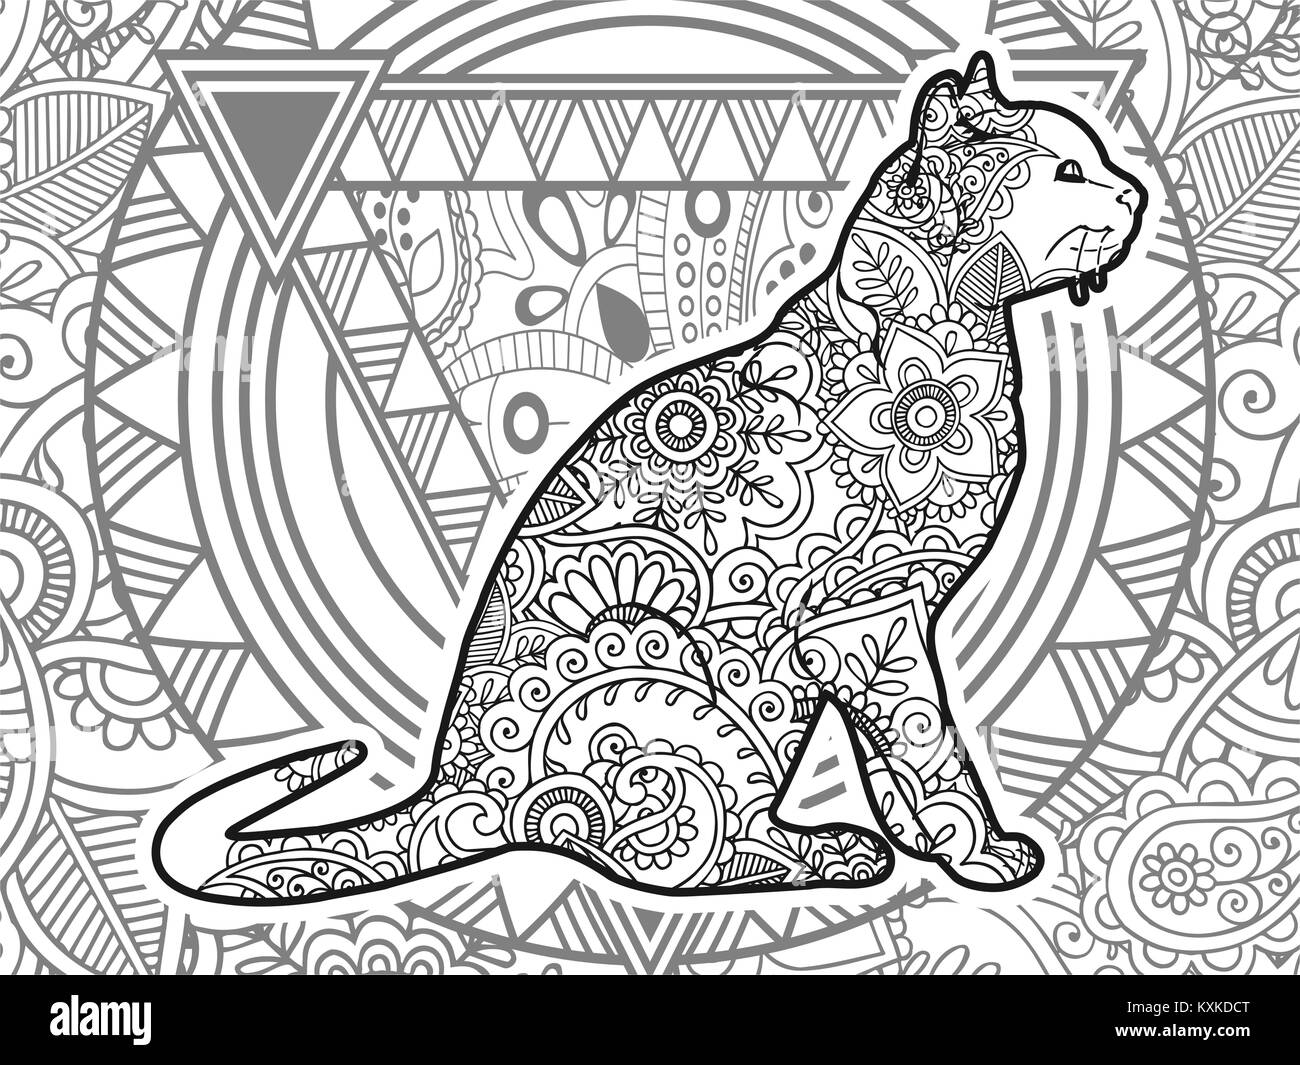 Black And White Hand Drawn Doodle Animal Paisley Adult Stress Release Coloring Page Zentangle Vector